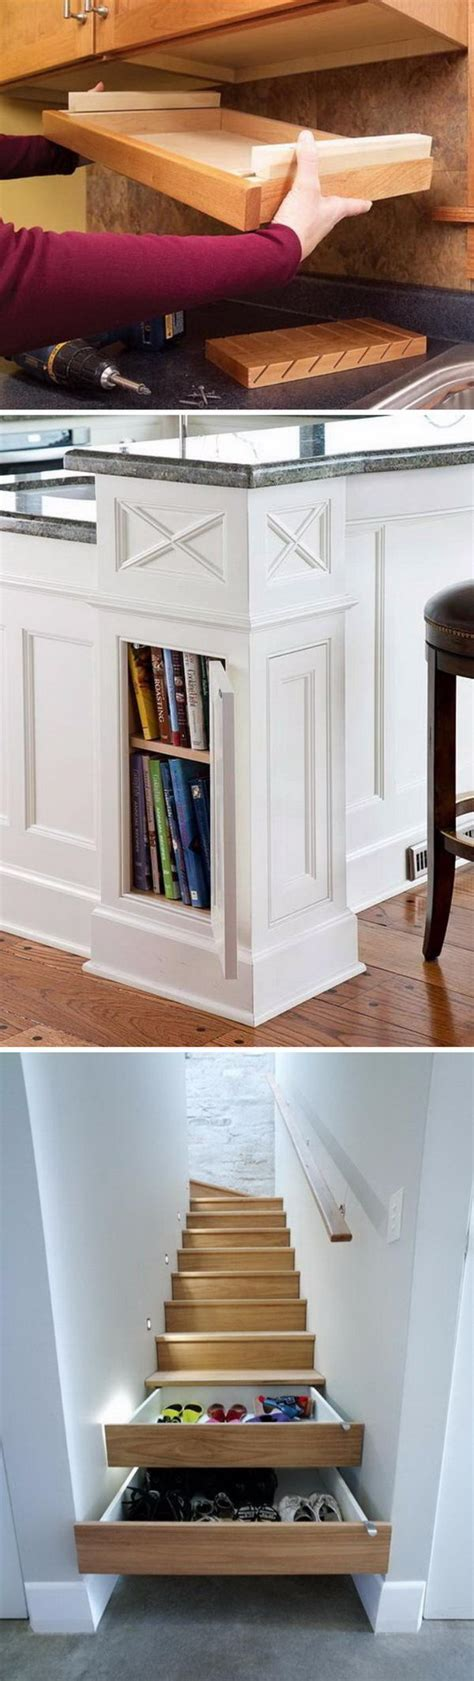 hidden storage ideas 20 clever hidden storage ideas perfect for any home